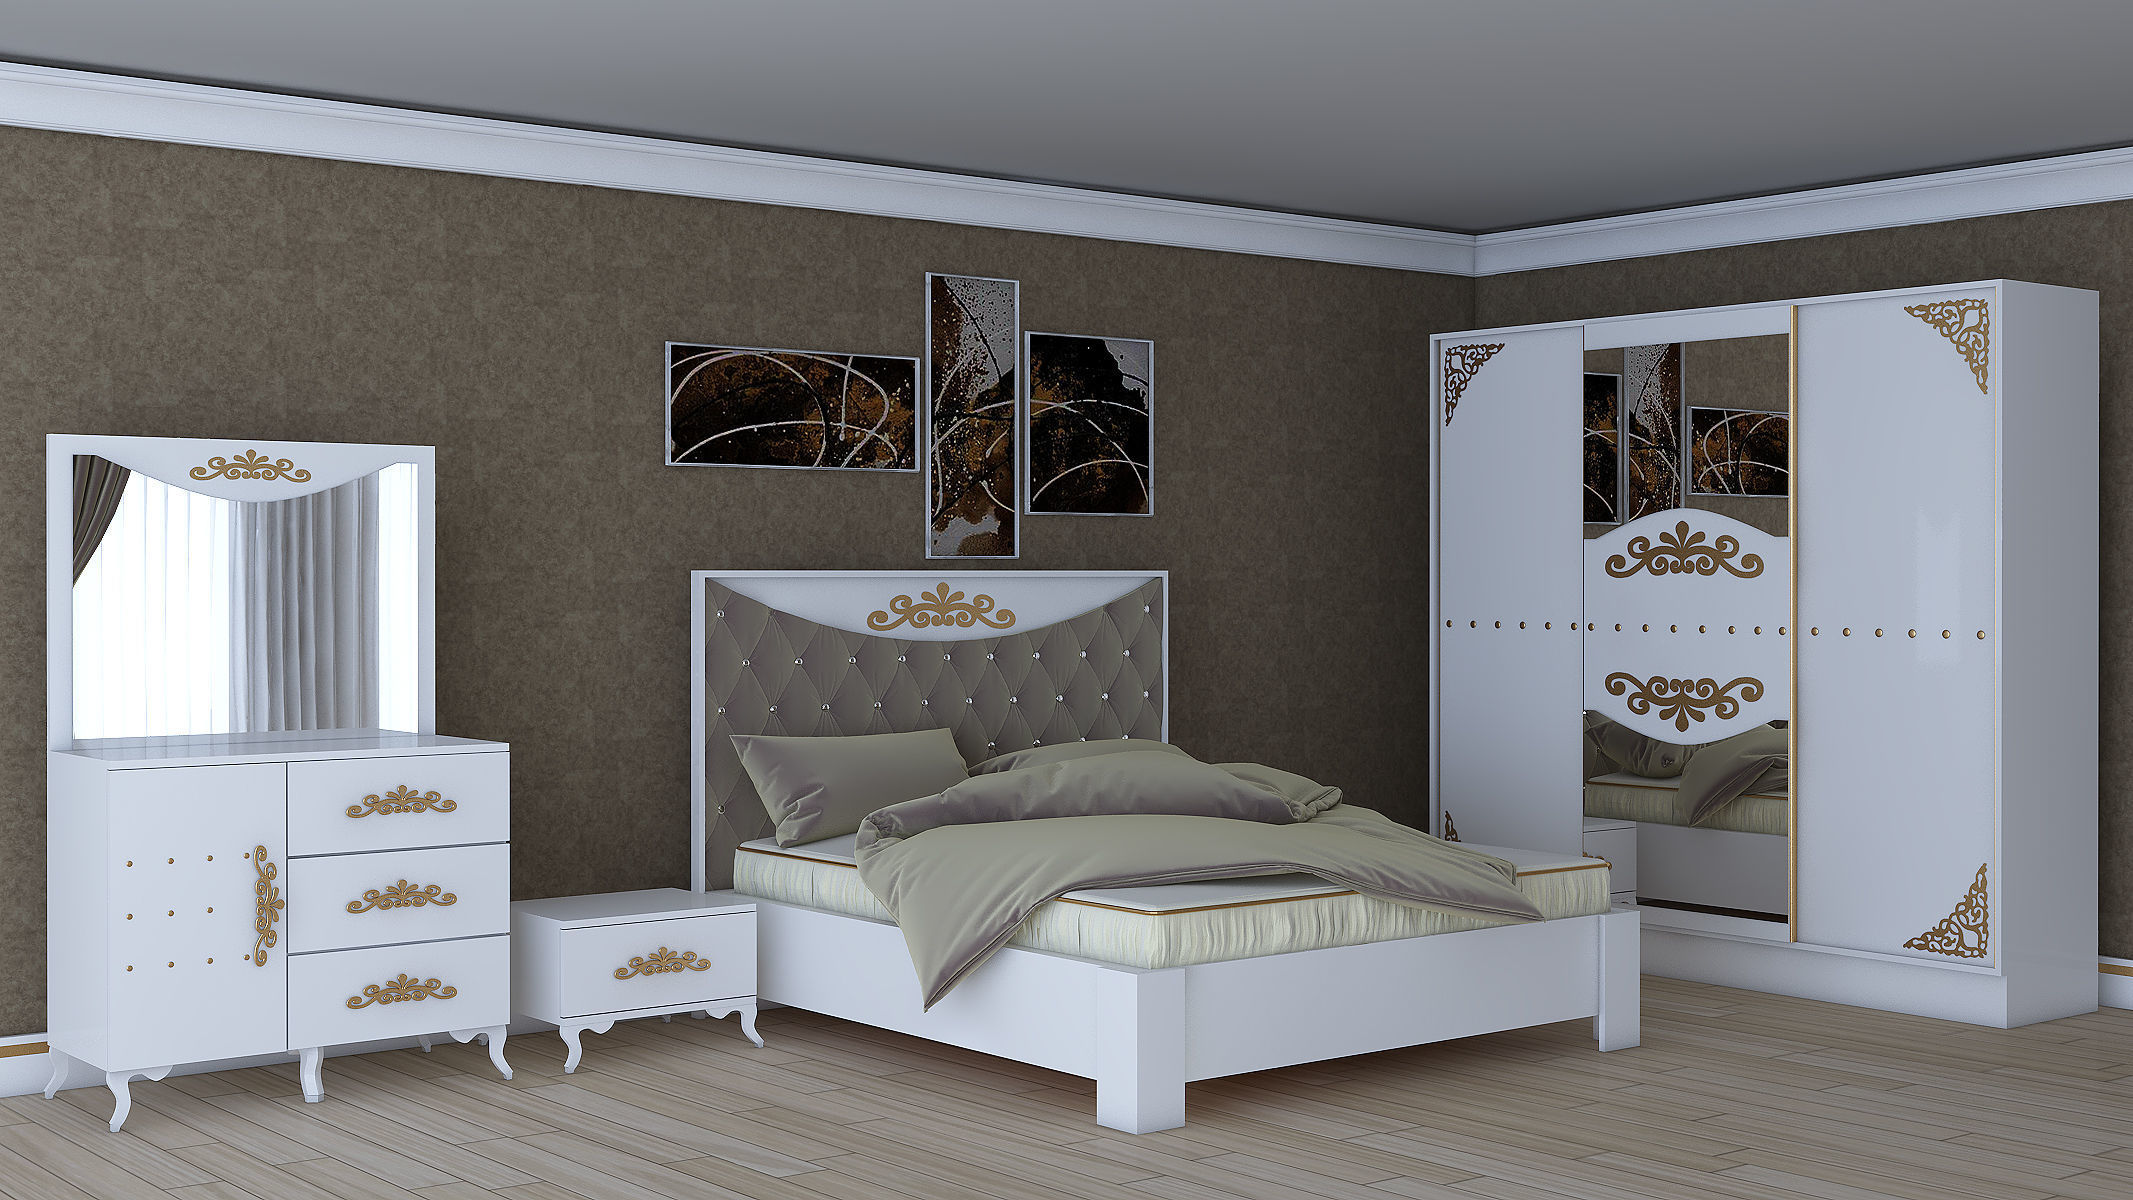 Bedroom Furniture Design D 3D model low-poly | CGTrader on Model Bedroom Ideas  id=86588